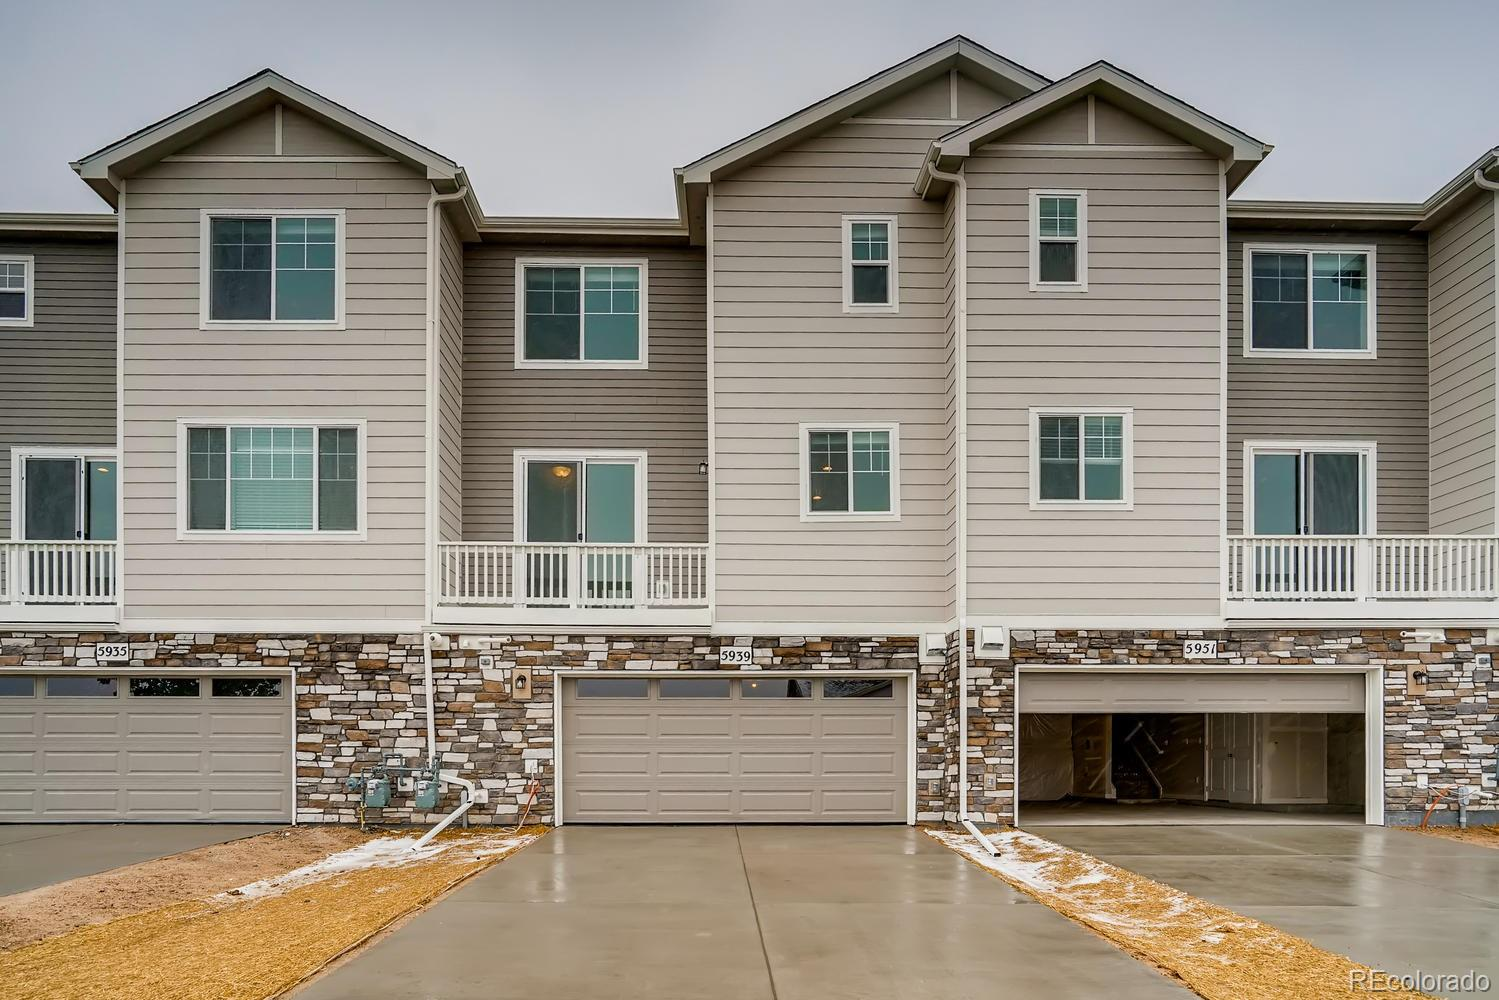 """Luxury Townhome in the heart of Castlerock with an April/May 2021 completion! Photos are from similar home.  The beautiful Berkshire is a 2 bed, 2.5 bath, with oversized attached 2 car garage. Kitchen includes stainless steel appliances, granite countertops, gas range, dishwasher, and built-in microwave.  Open floorplan with spacious living area, kitchen island, dining space, and is perfect for entertaining.  Both bedrooms have en-suite bathrooms providing privacy and making it a great roommate layout.  Upstairs laundry conveniently located near both bedrooms.  Includes energy-efficient furnace, A/C, tankless water heater, and 2"""" white blinds. Right outside your back door, you can enjoy miles of walking trails through the beautiful scenery of the nature filled canyons. Don't miss out on living at The Enclave, just moments away from major highways, shopping, dining, award winning Douglas County Schools, and multiple outdoor activities!"""